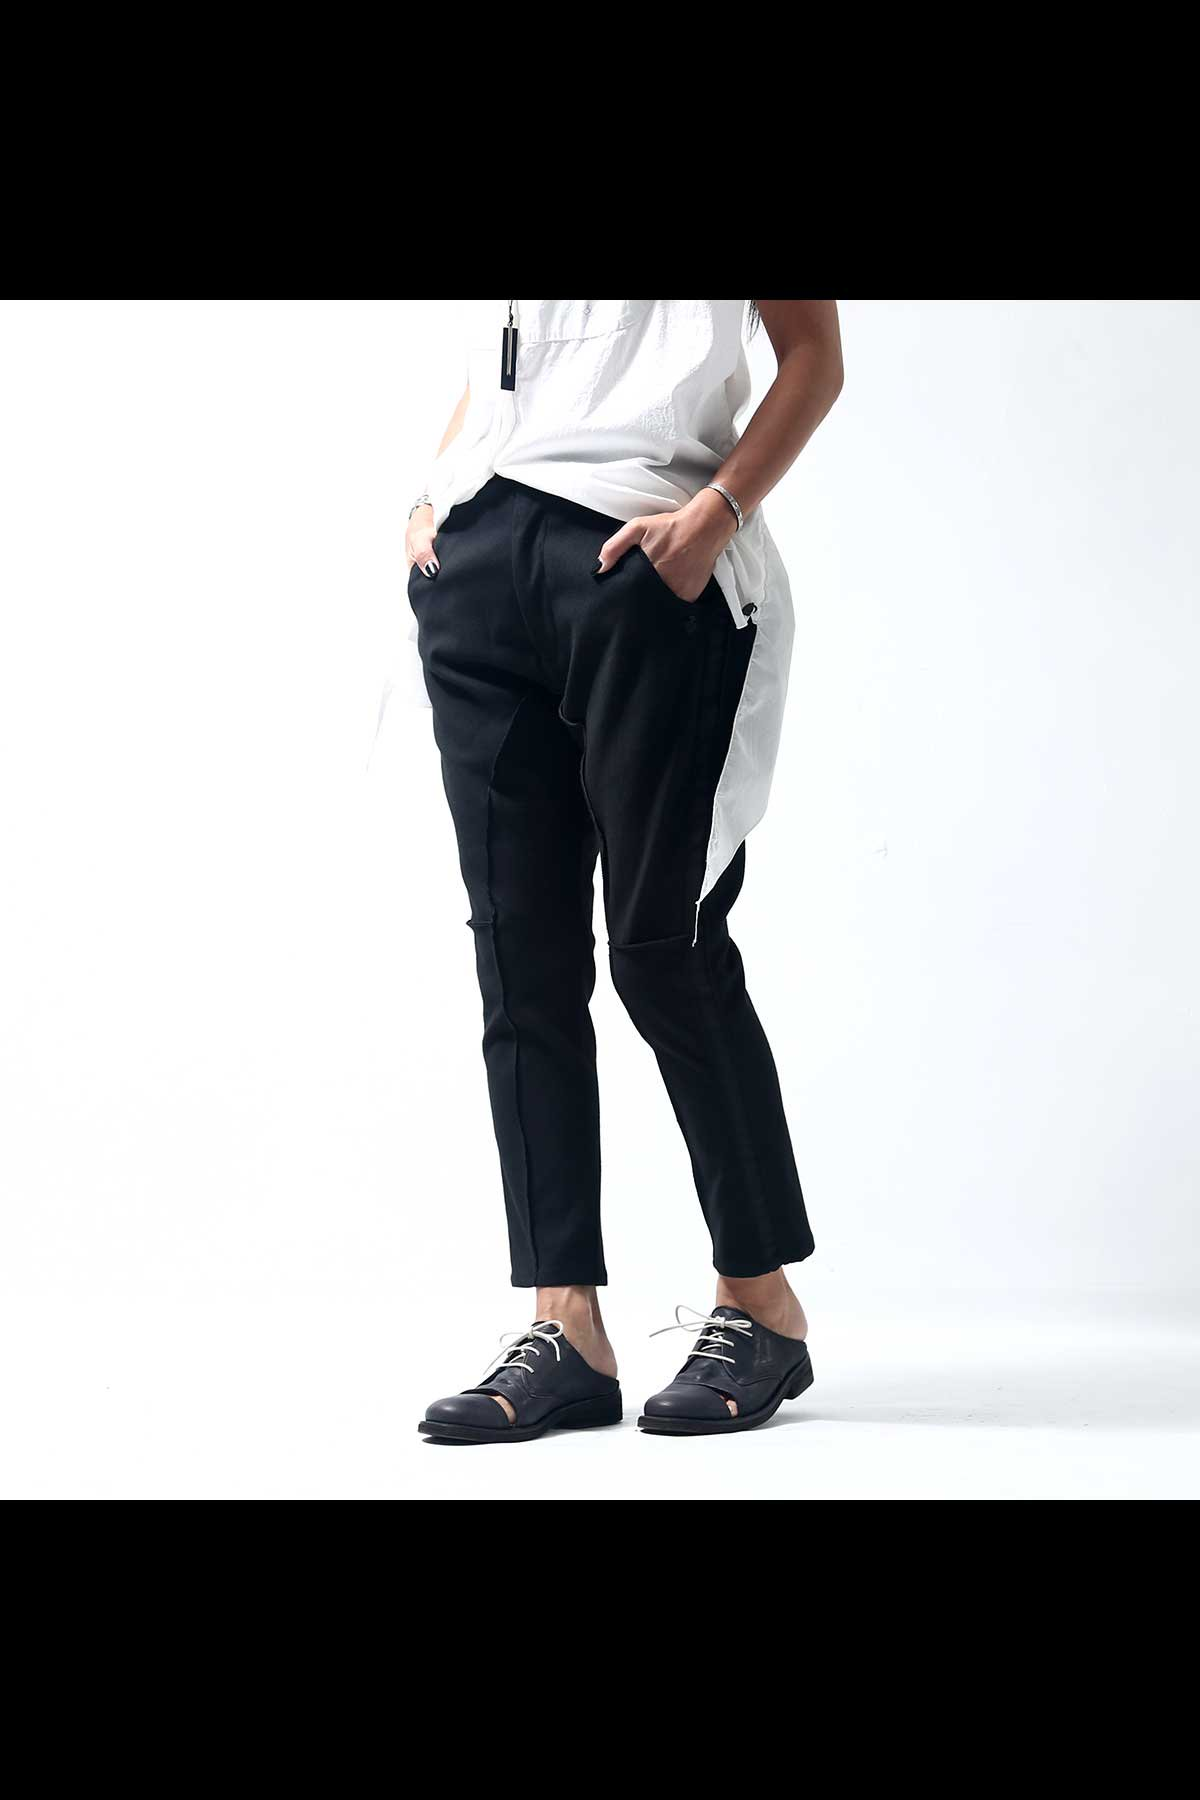 <img class='new_mark_img1' src='https://img.shop-pro.jp/img/new/icons8.gif' style='border:none;display:inline;margin:0px;padding:0px;width:auto;' />STRETCH SIDE LINE PANTS P37_BLACK